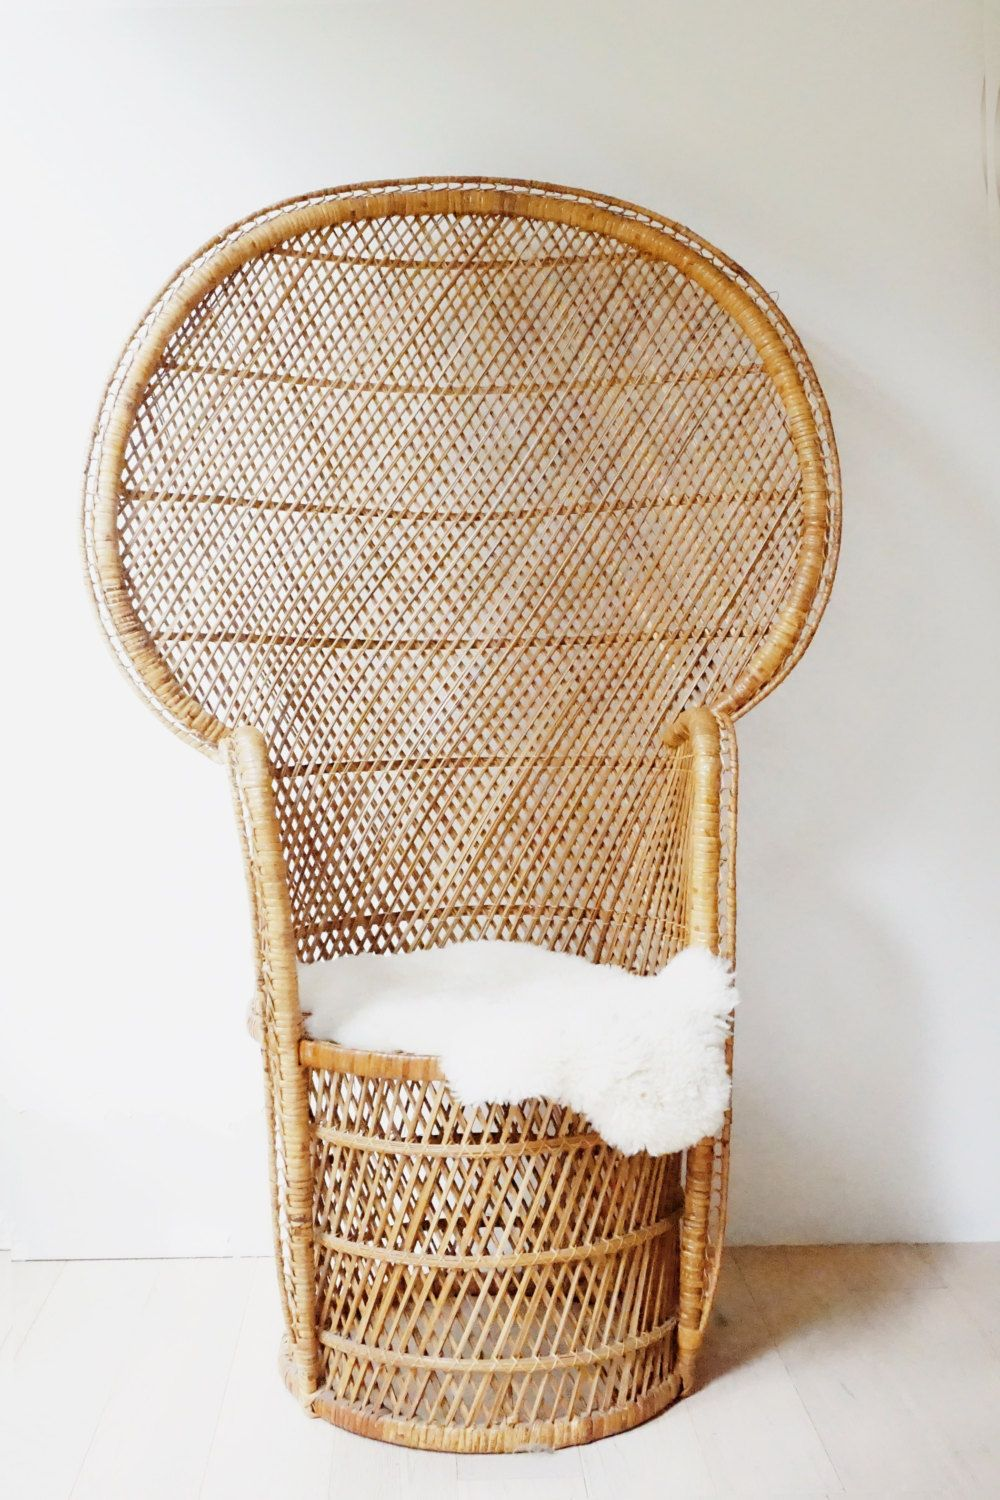 Charmant Vintage Peacock Chair, Rattan Full Size, Woven Handmade 70s Wicker Chair,  Large Bohemian Style Peackock Chair, Local Pick Up Only